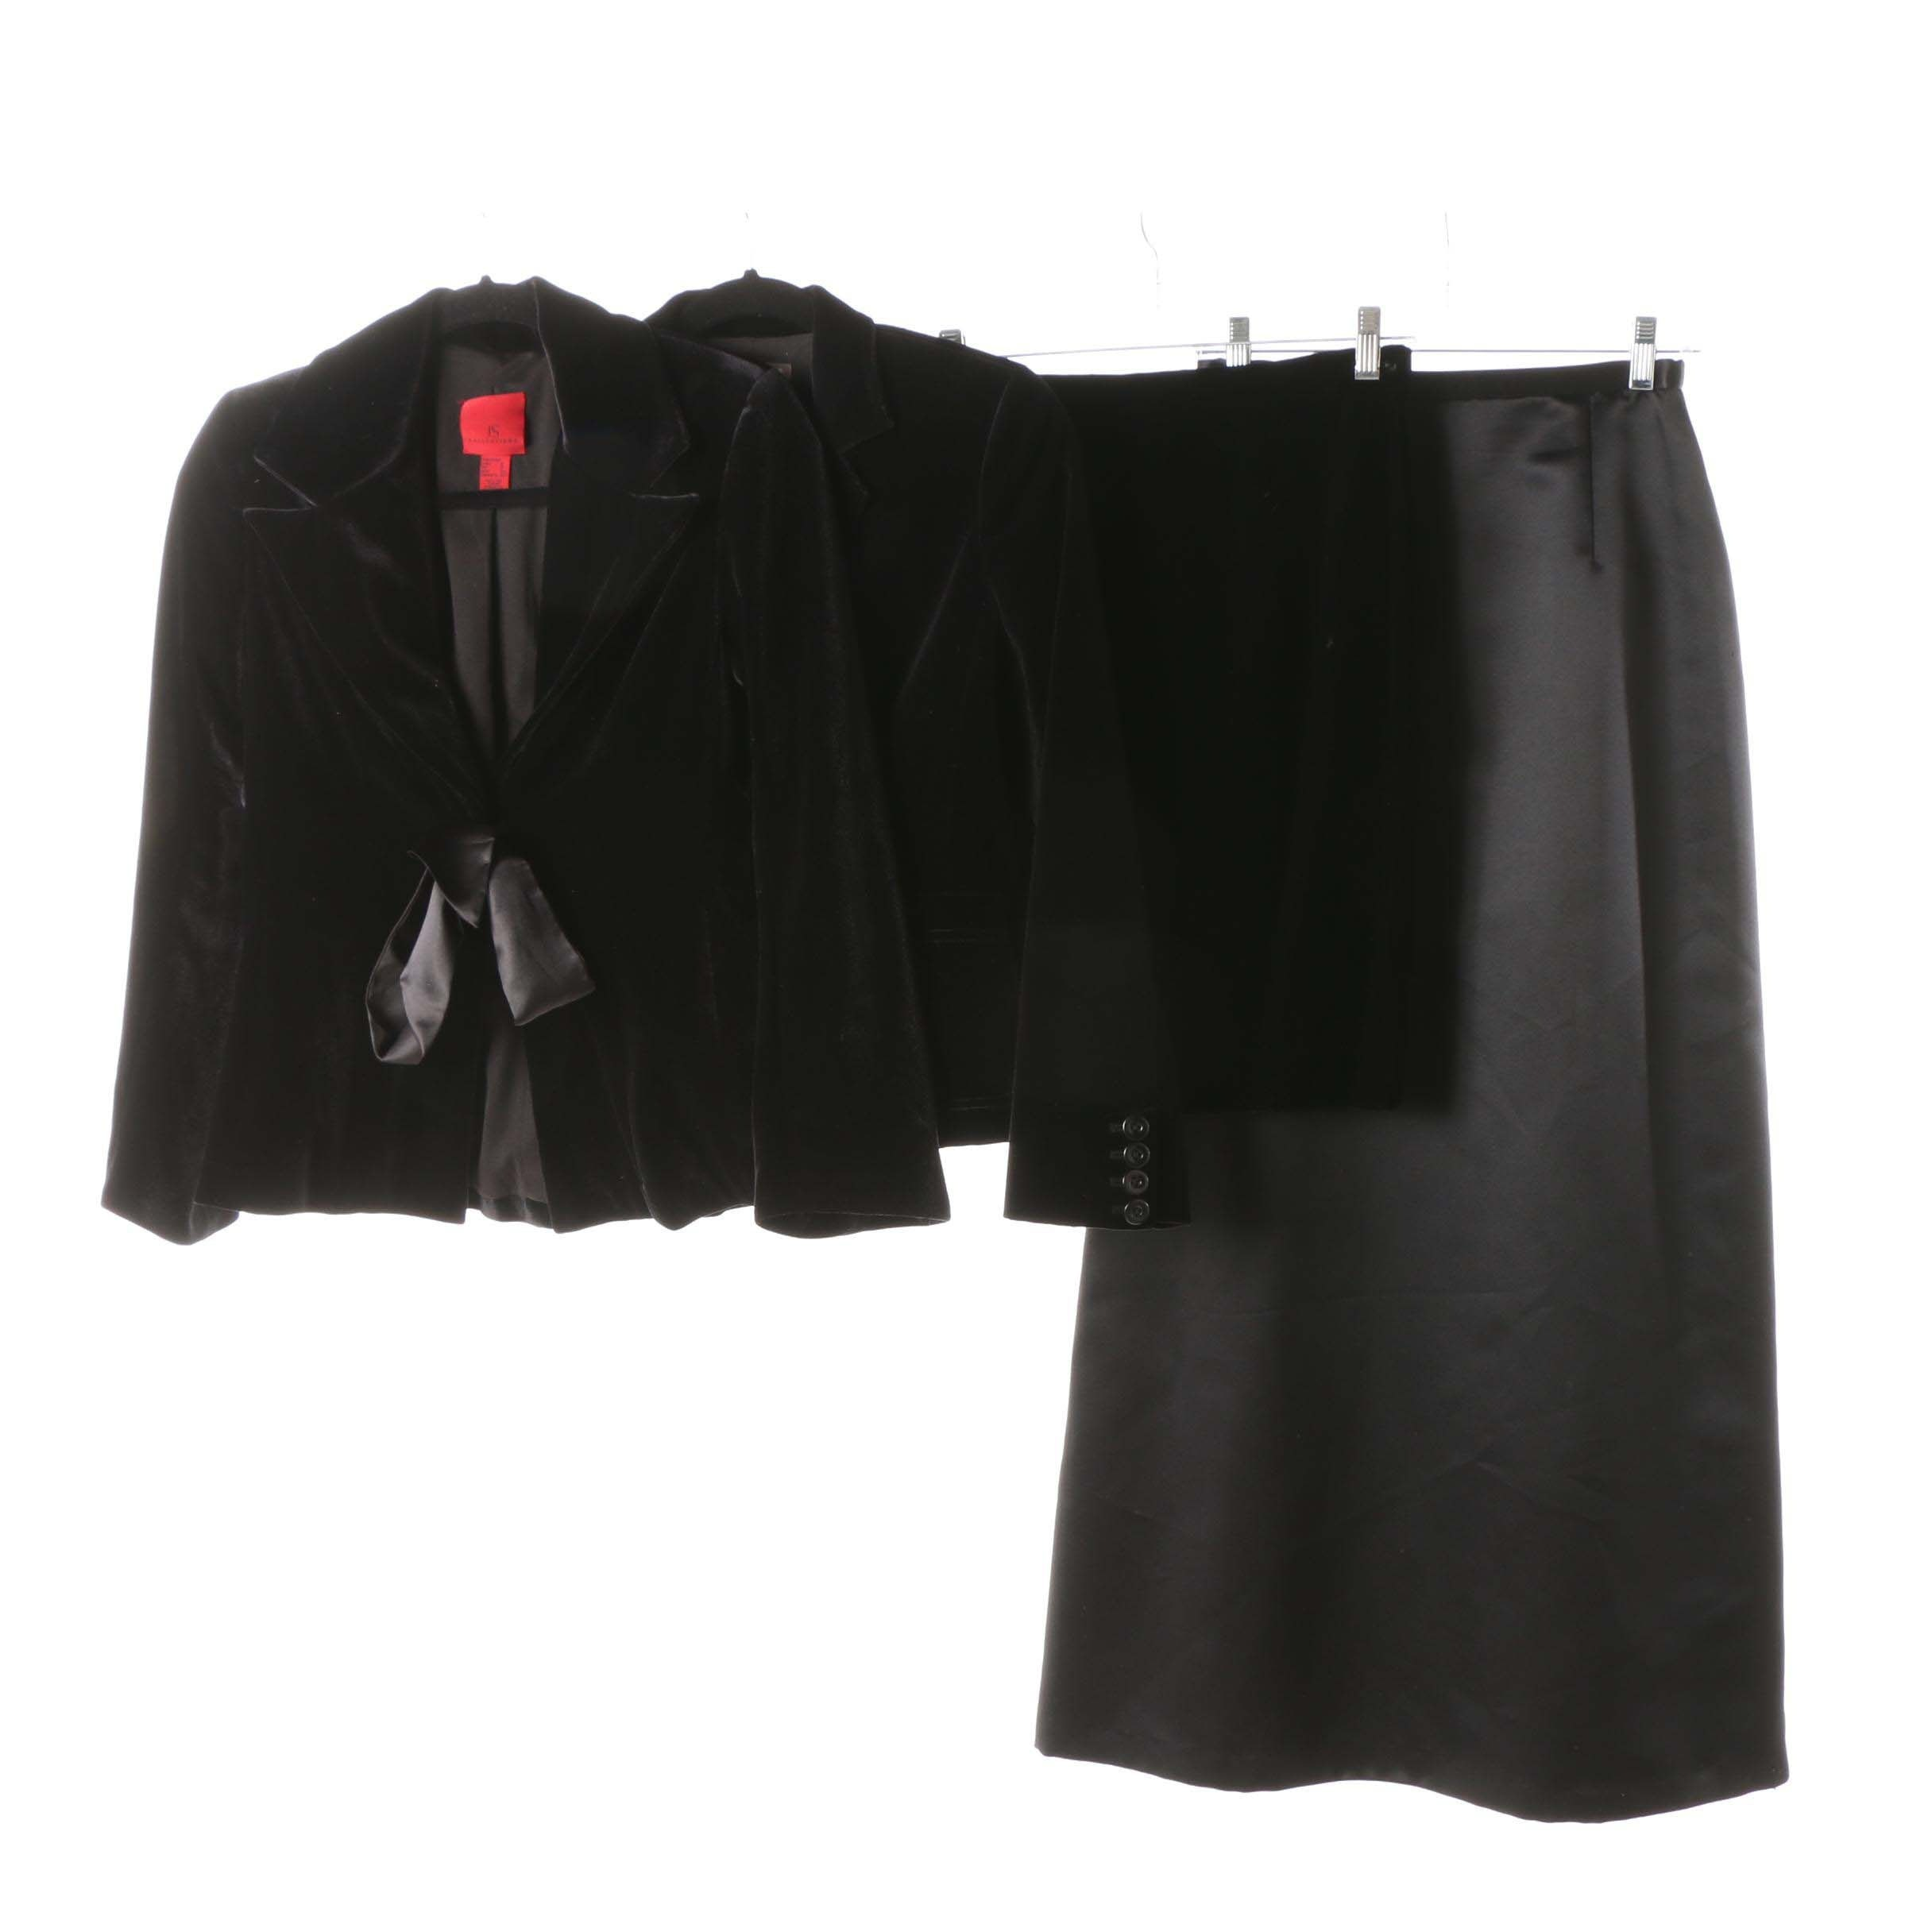 Women's Velveteen and Satin Jackets and Skirts